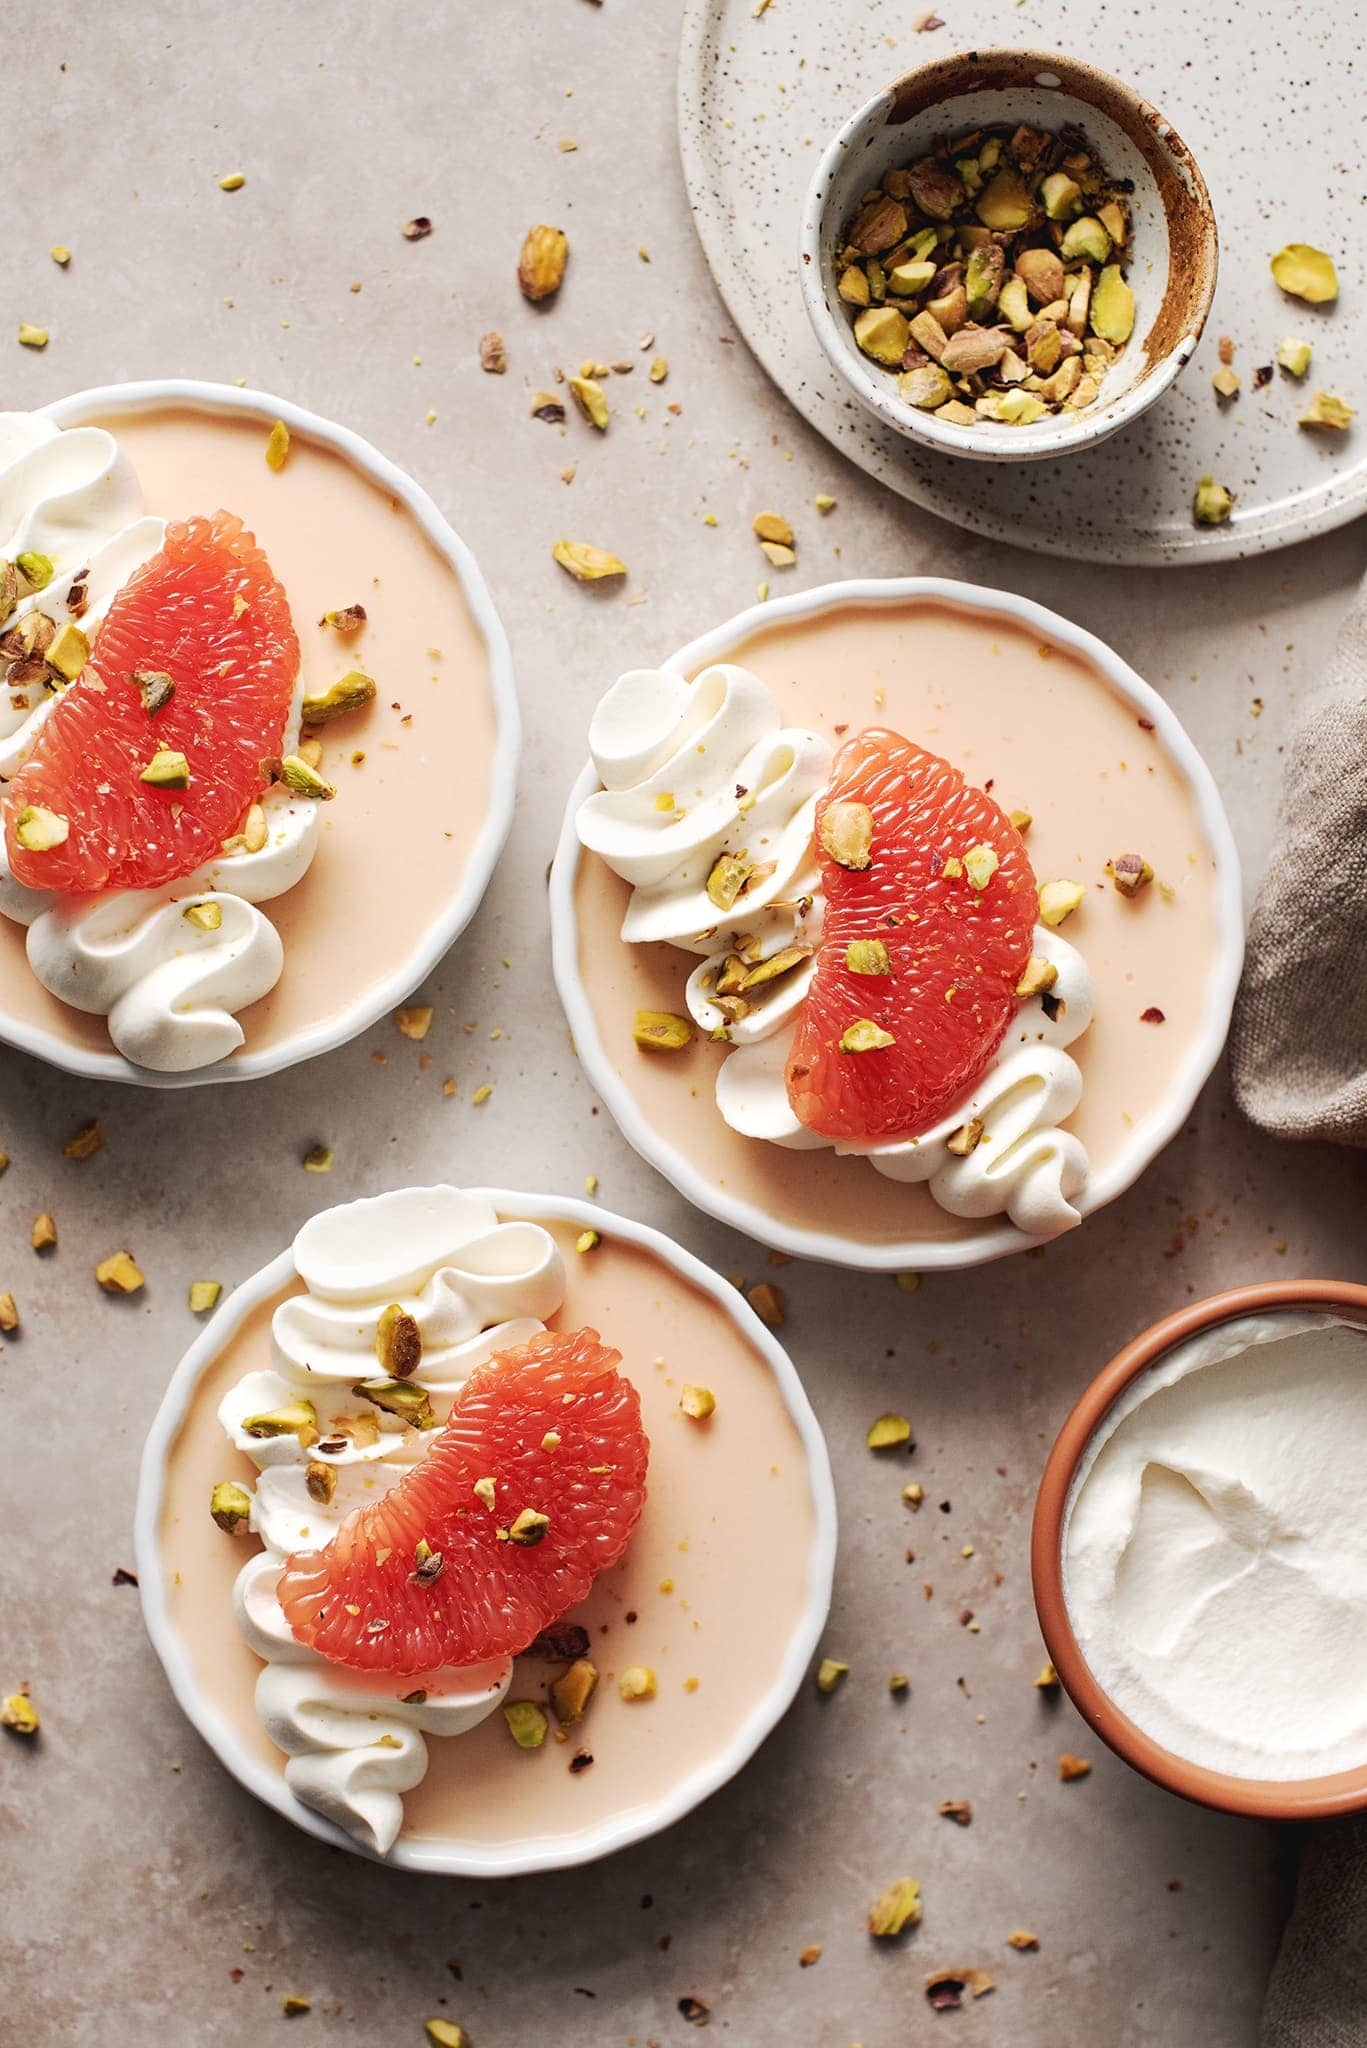 Three panna cottas with whipped cream and grapefruit slices